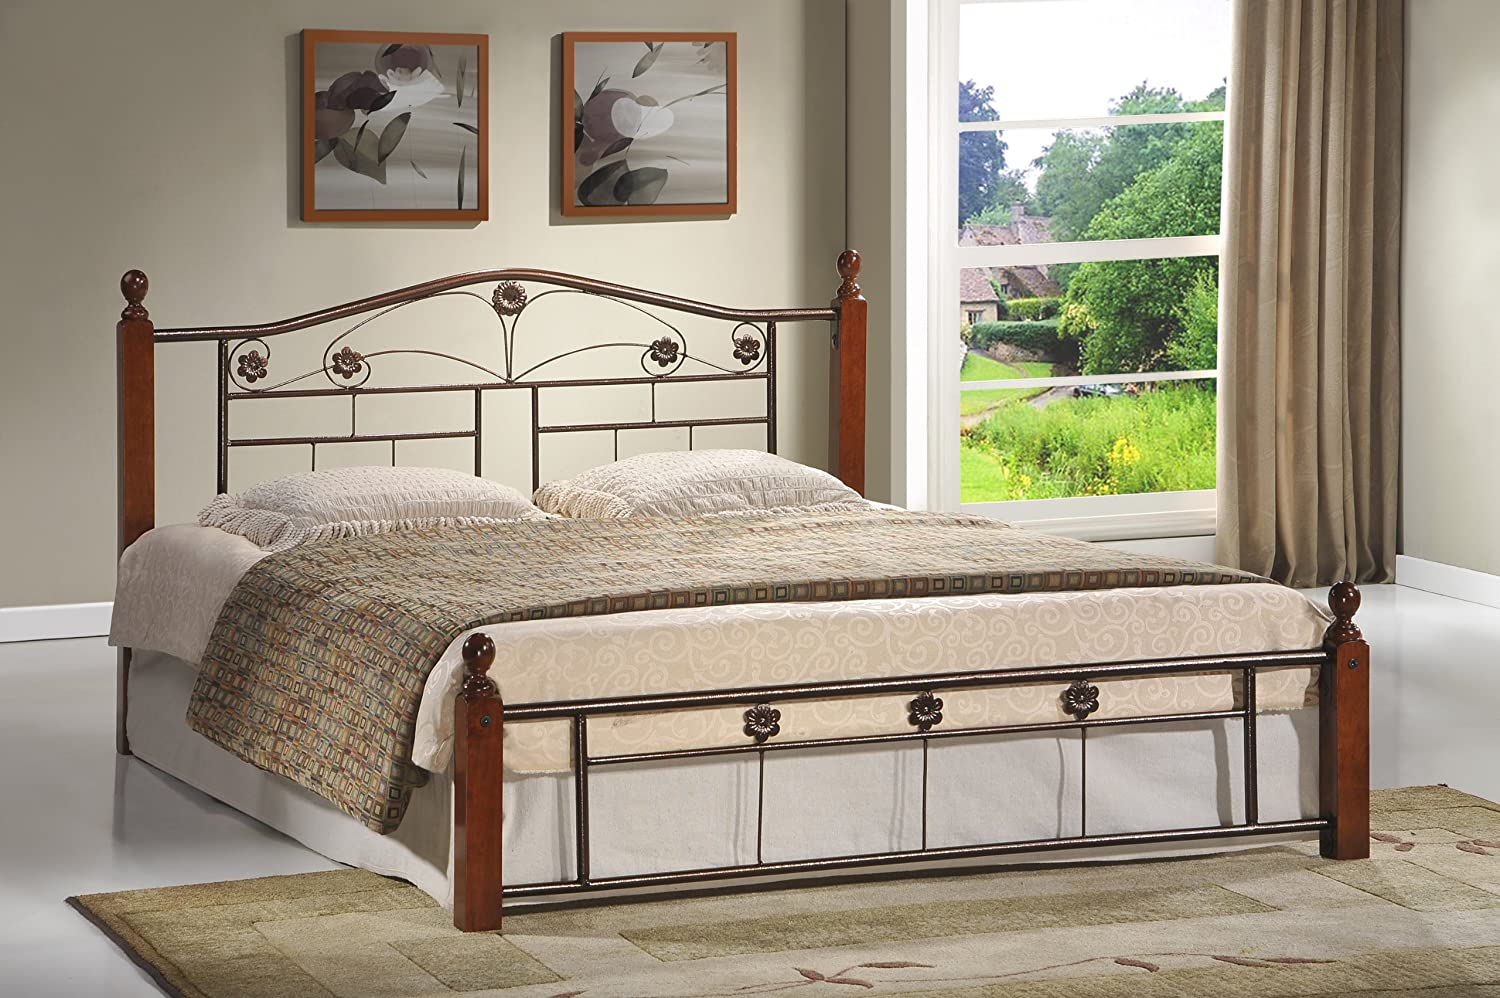 Amazon.com: Hodedah Complete Bronze Metal Bed With Headboard, Footboard,  Slats And Rails In Queen Size: Kitchen U0026 Dining